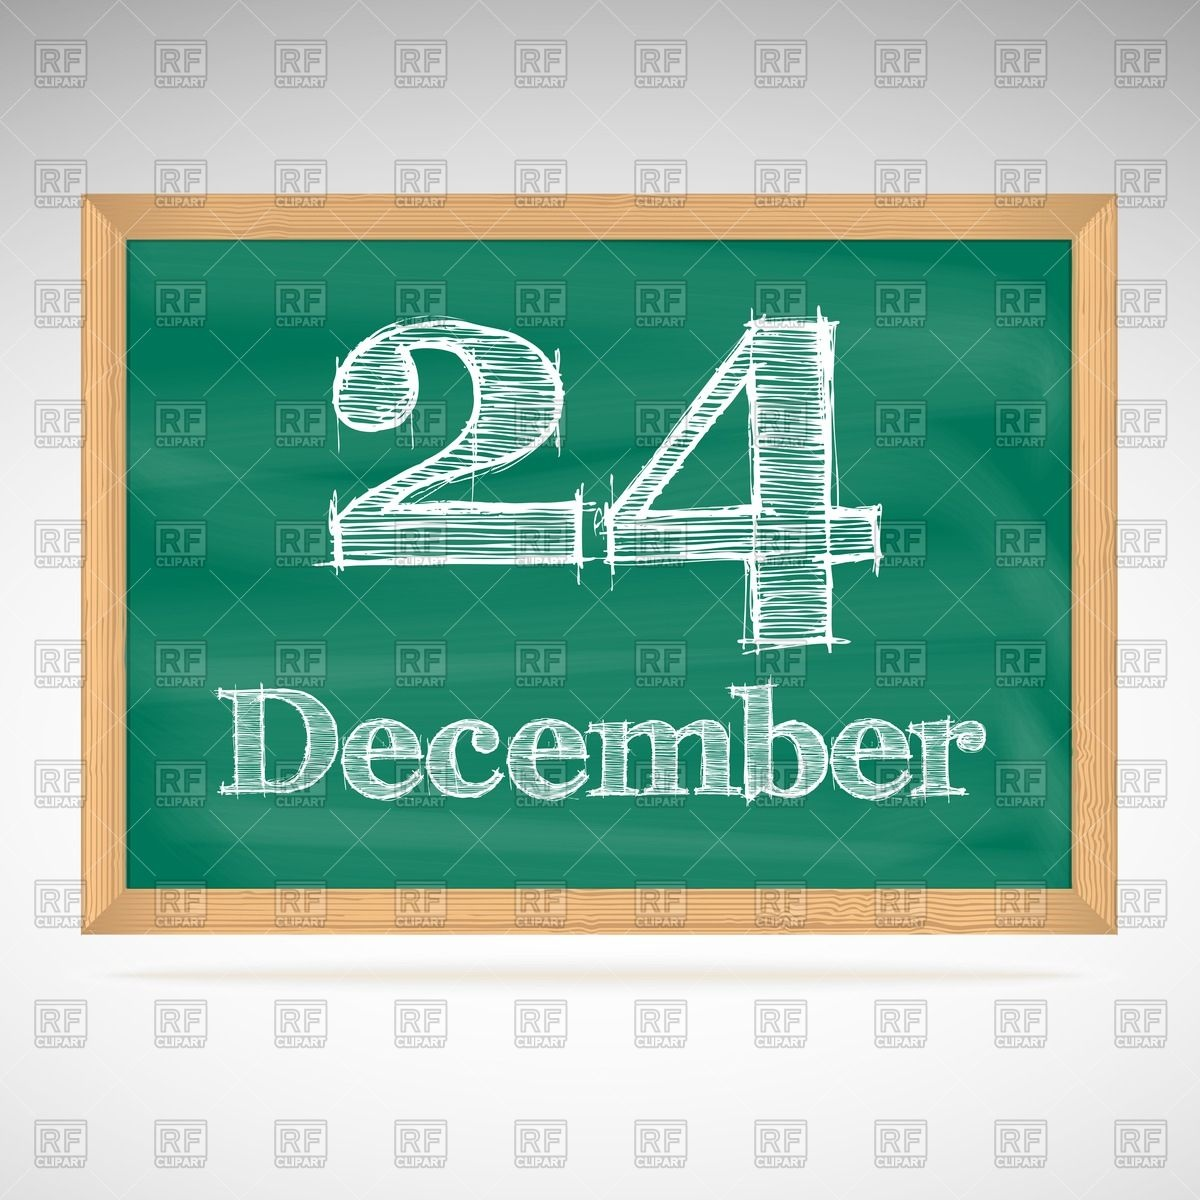 Calendar clipart december 24 clipart black and white library School blackboard calendar with inscription in chalk December 24 ... clipart black and white library